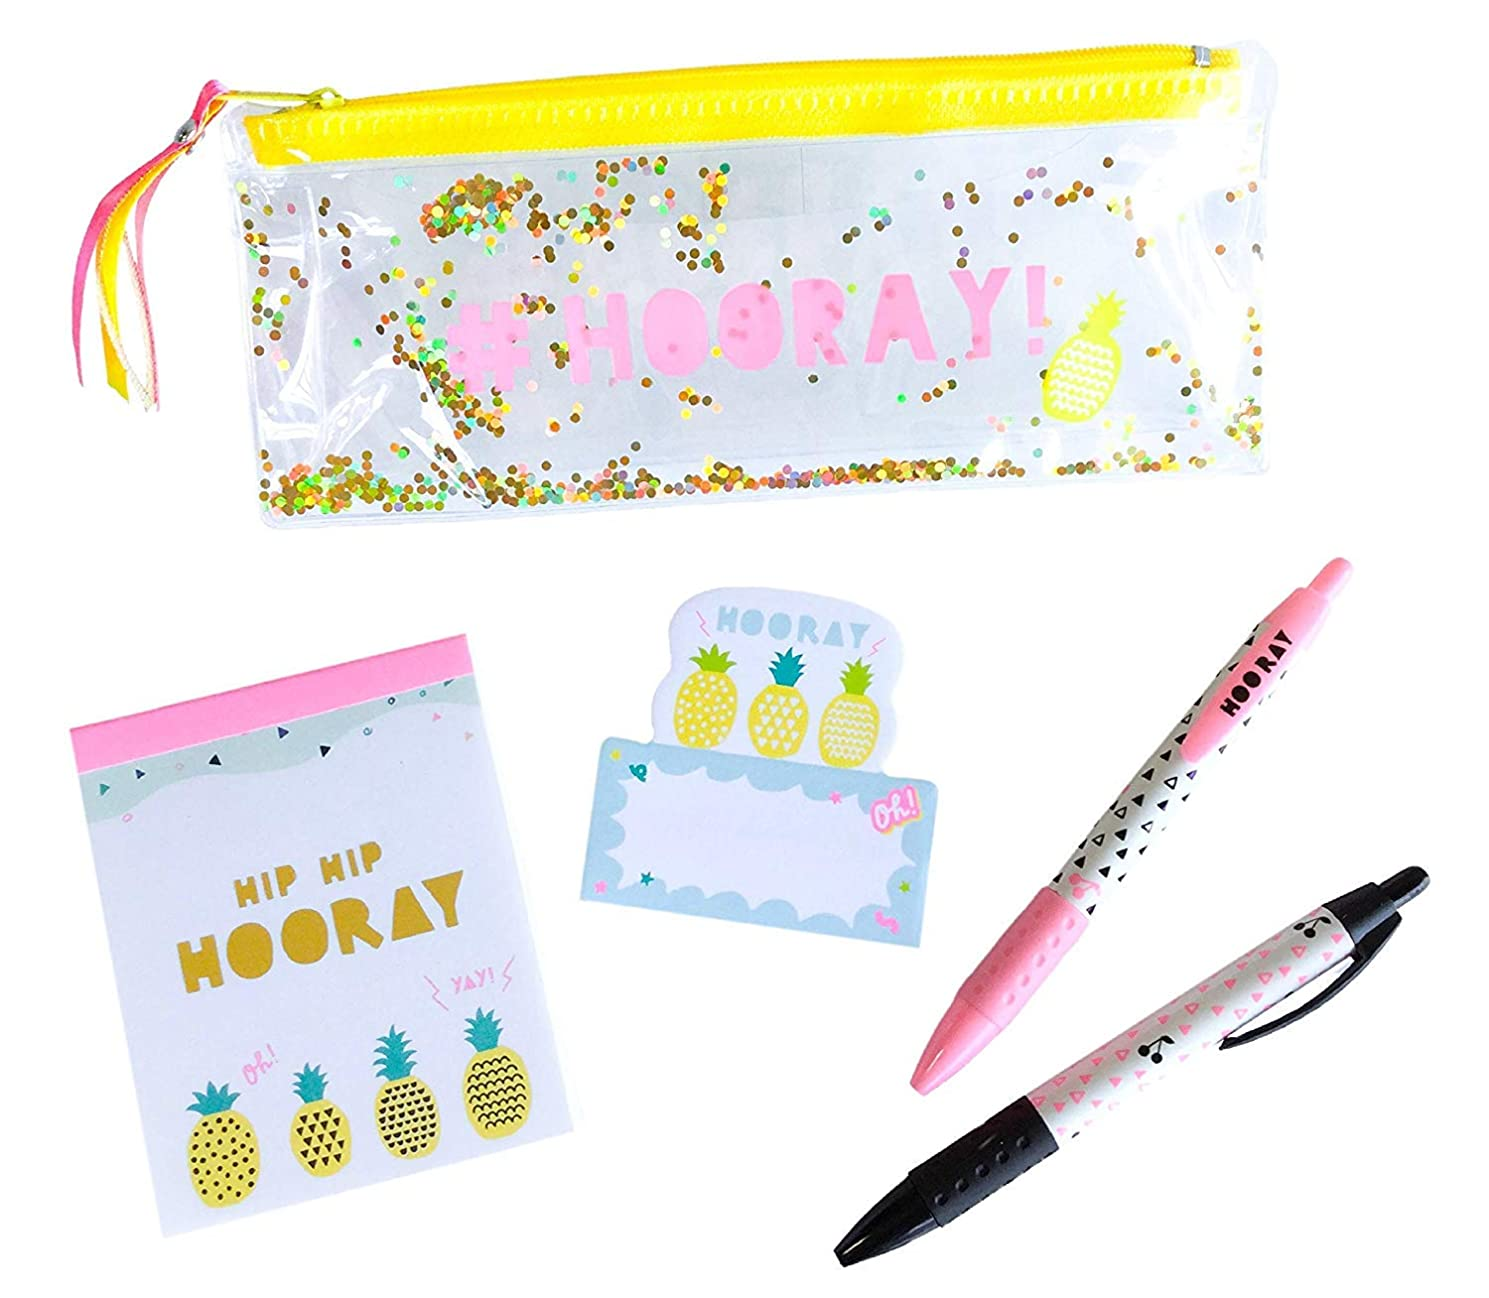 Cute Japanese Stationery Set (Vinyl Pen Case, Ballpoint Pen Black Ink 0.7 mm, Memo Pads, Sticky Note) 4 PCS Yellow Pineapple